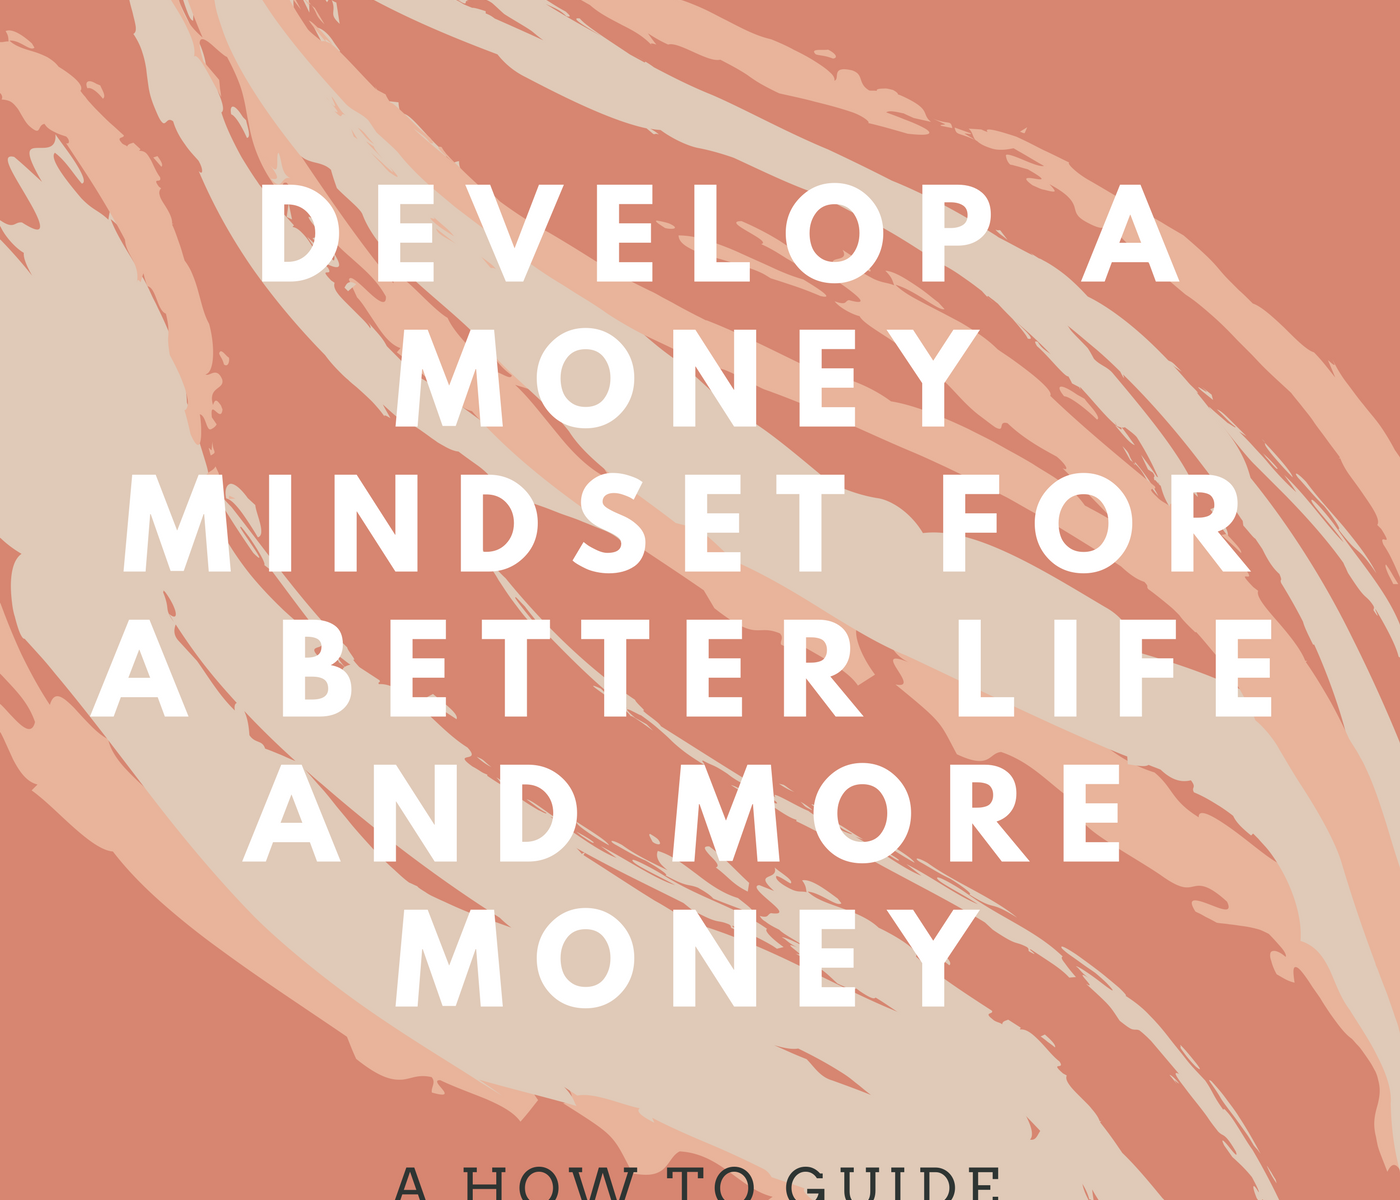 How to Develop a Money Mindset for a Better Life and More Money